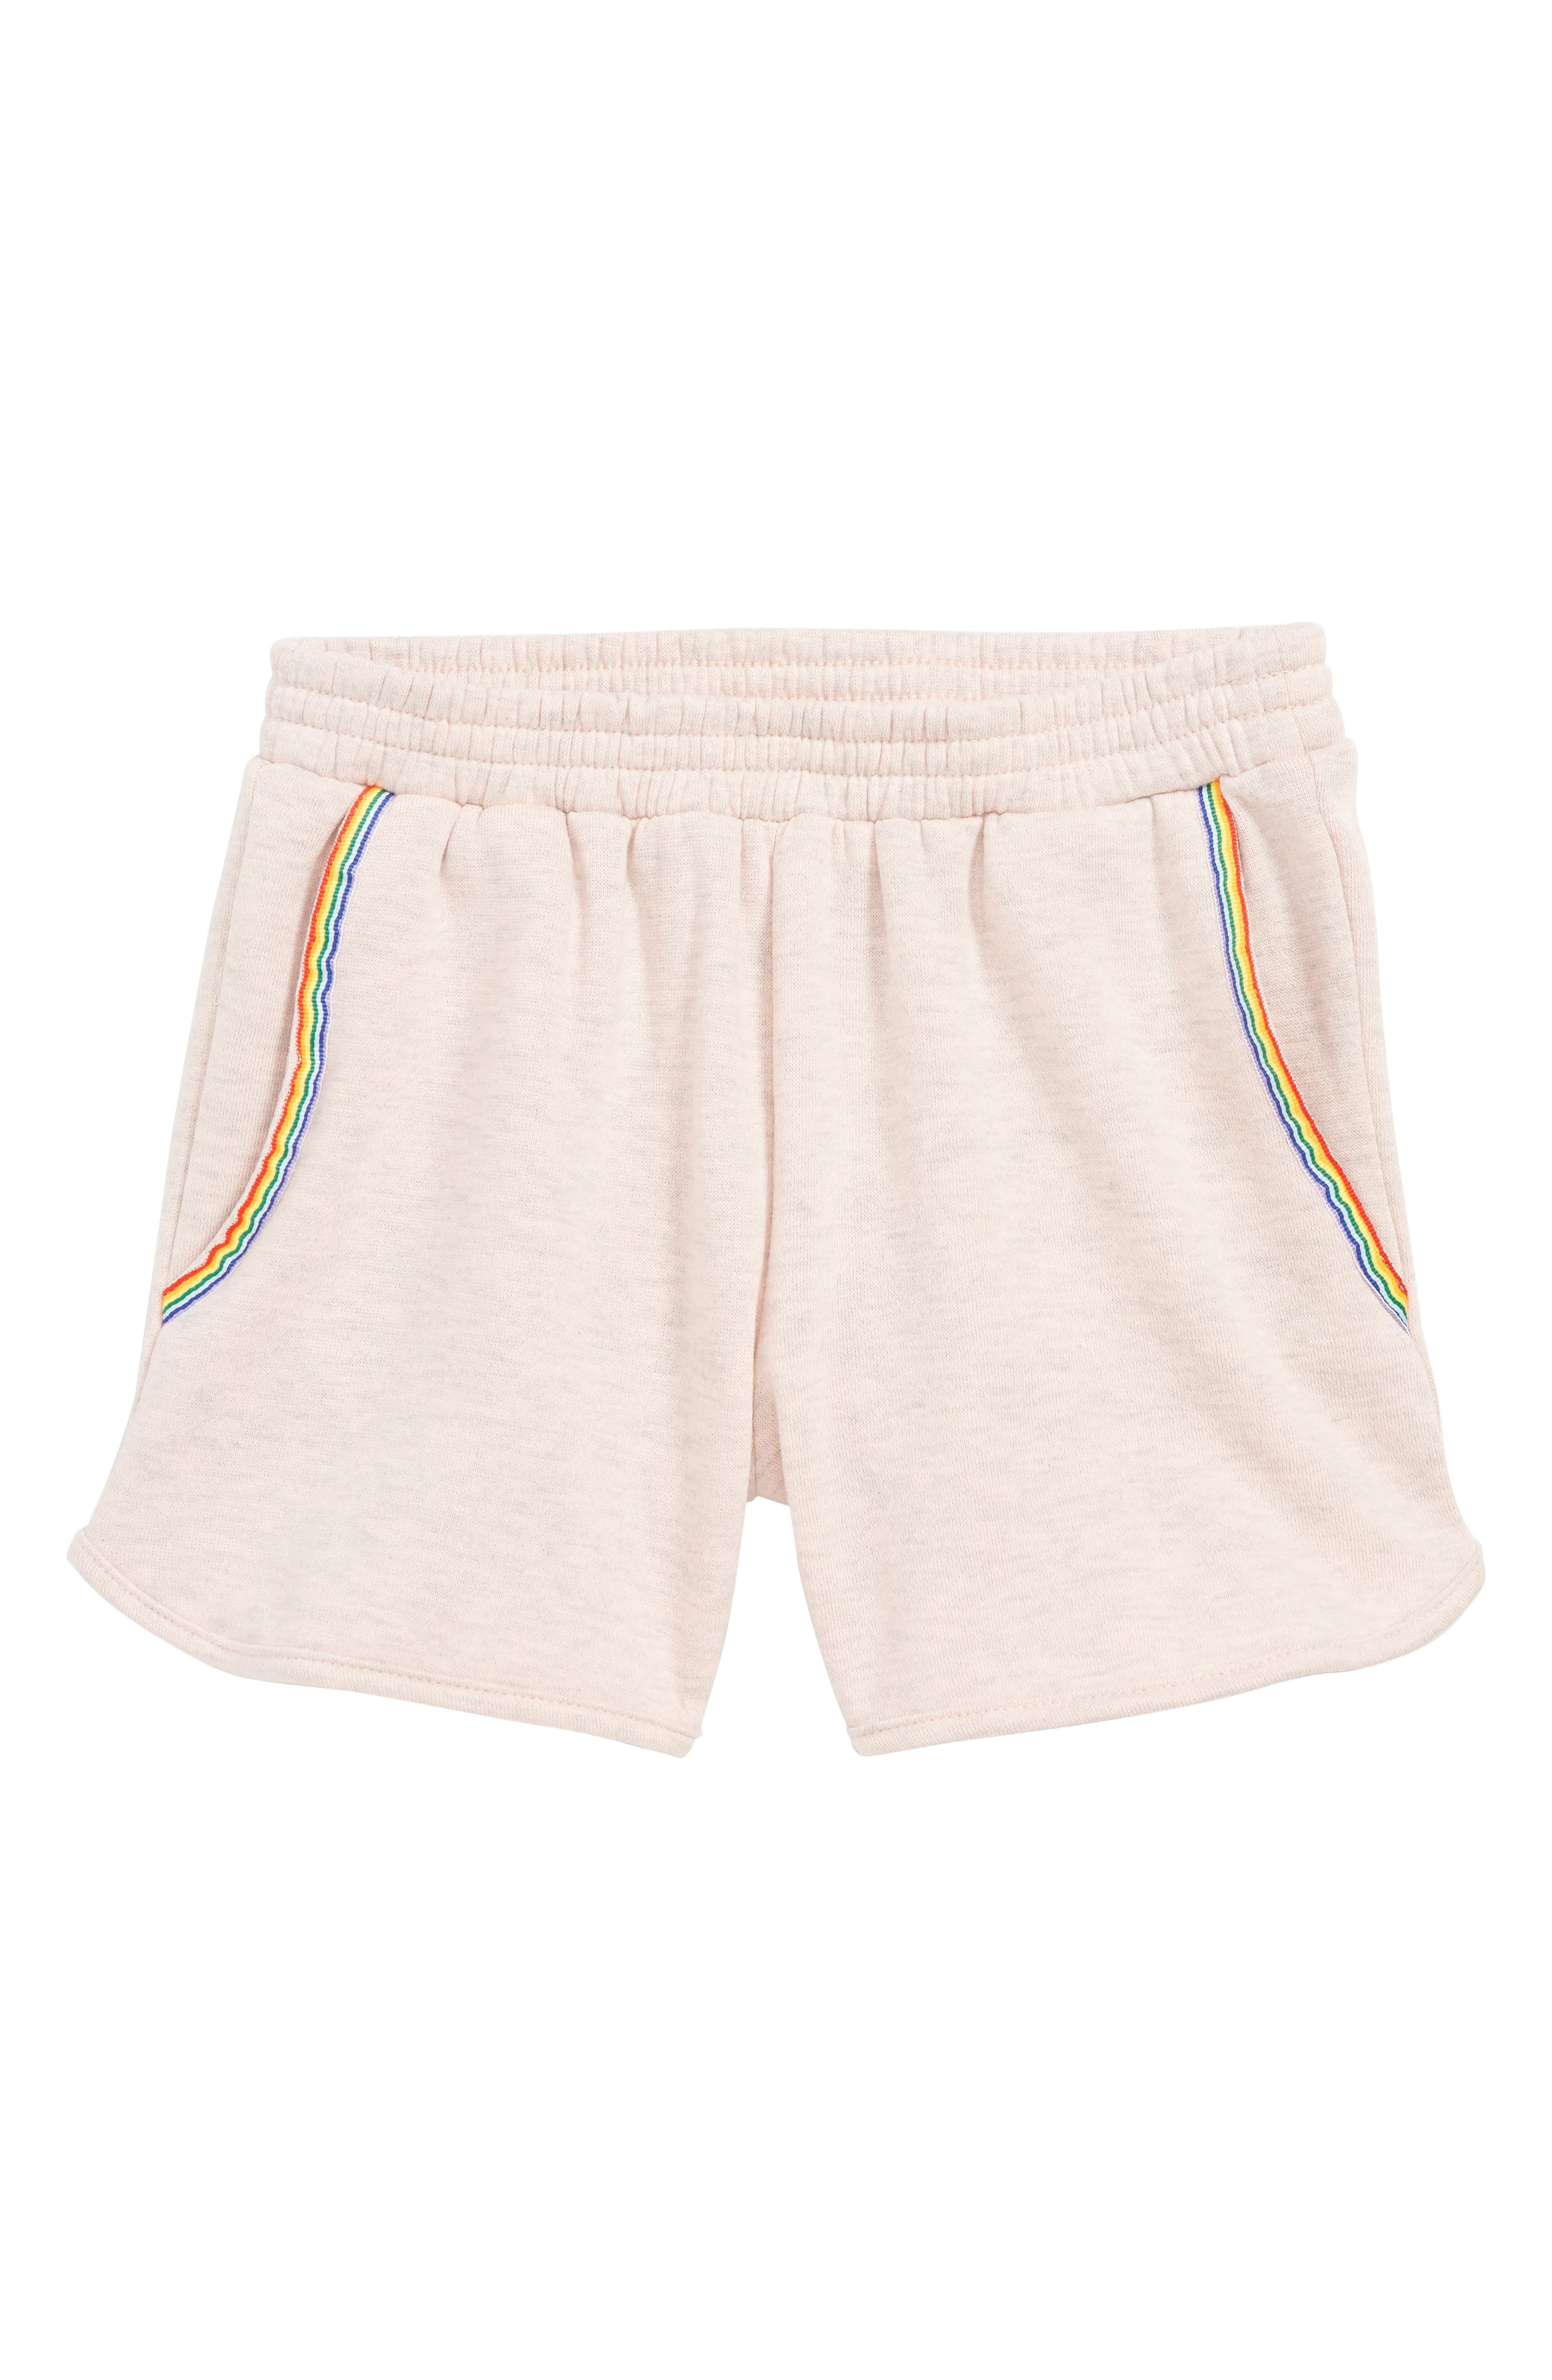 PEEK AREN'T YOU CURIOUS Go Go Shorts, Main, color, PINK